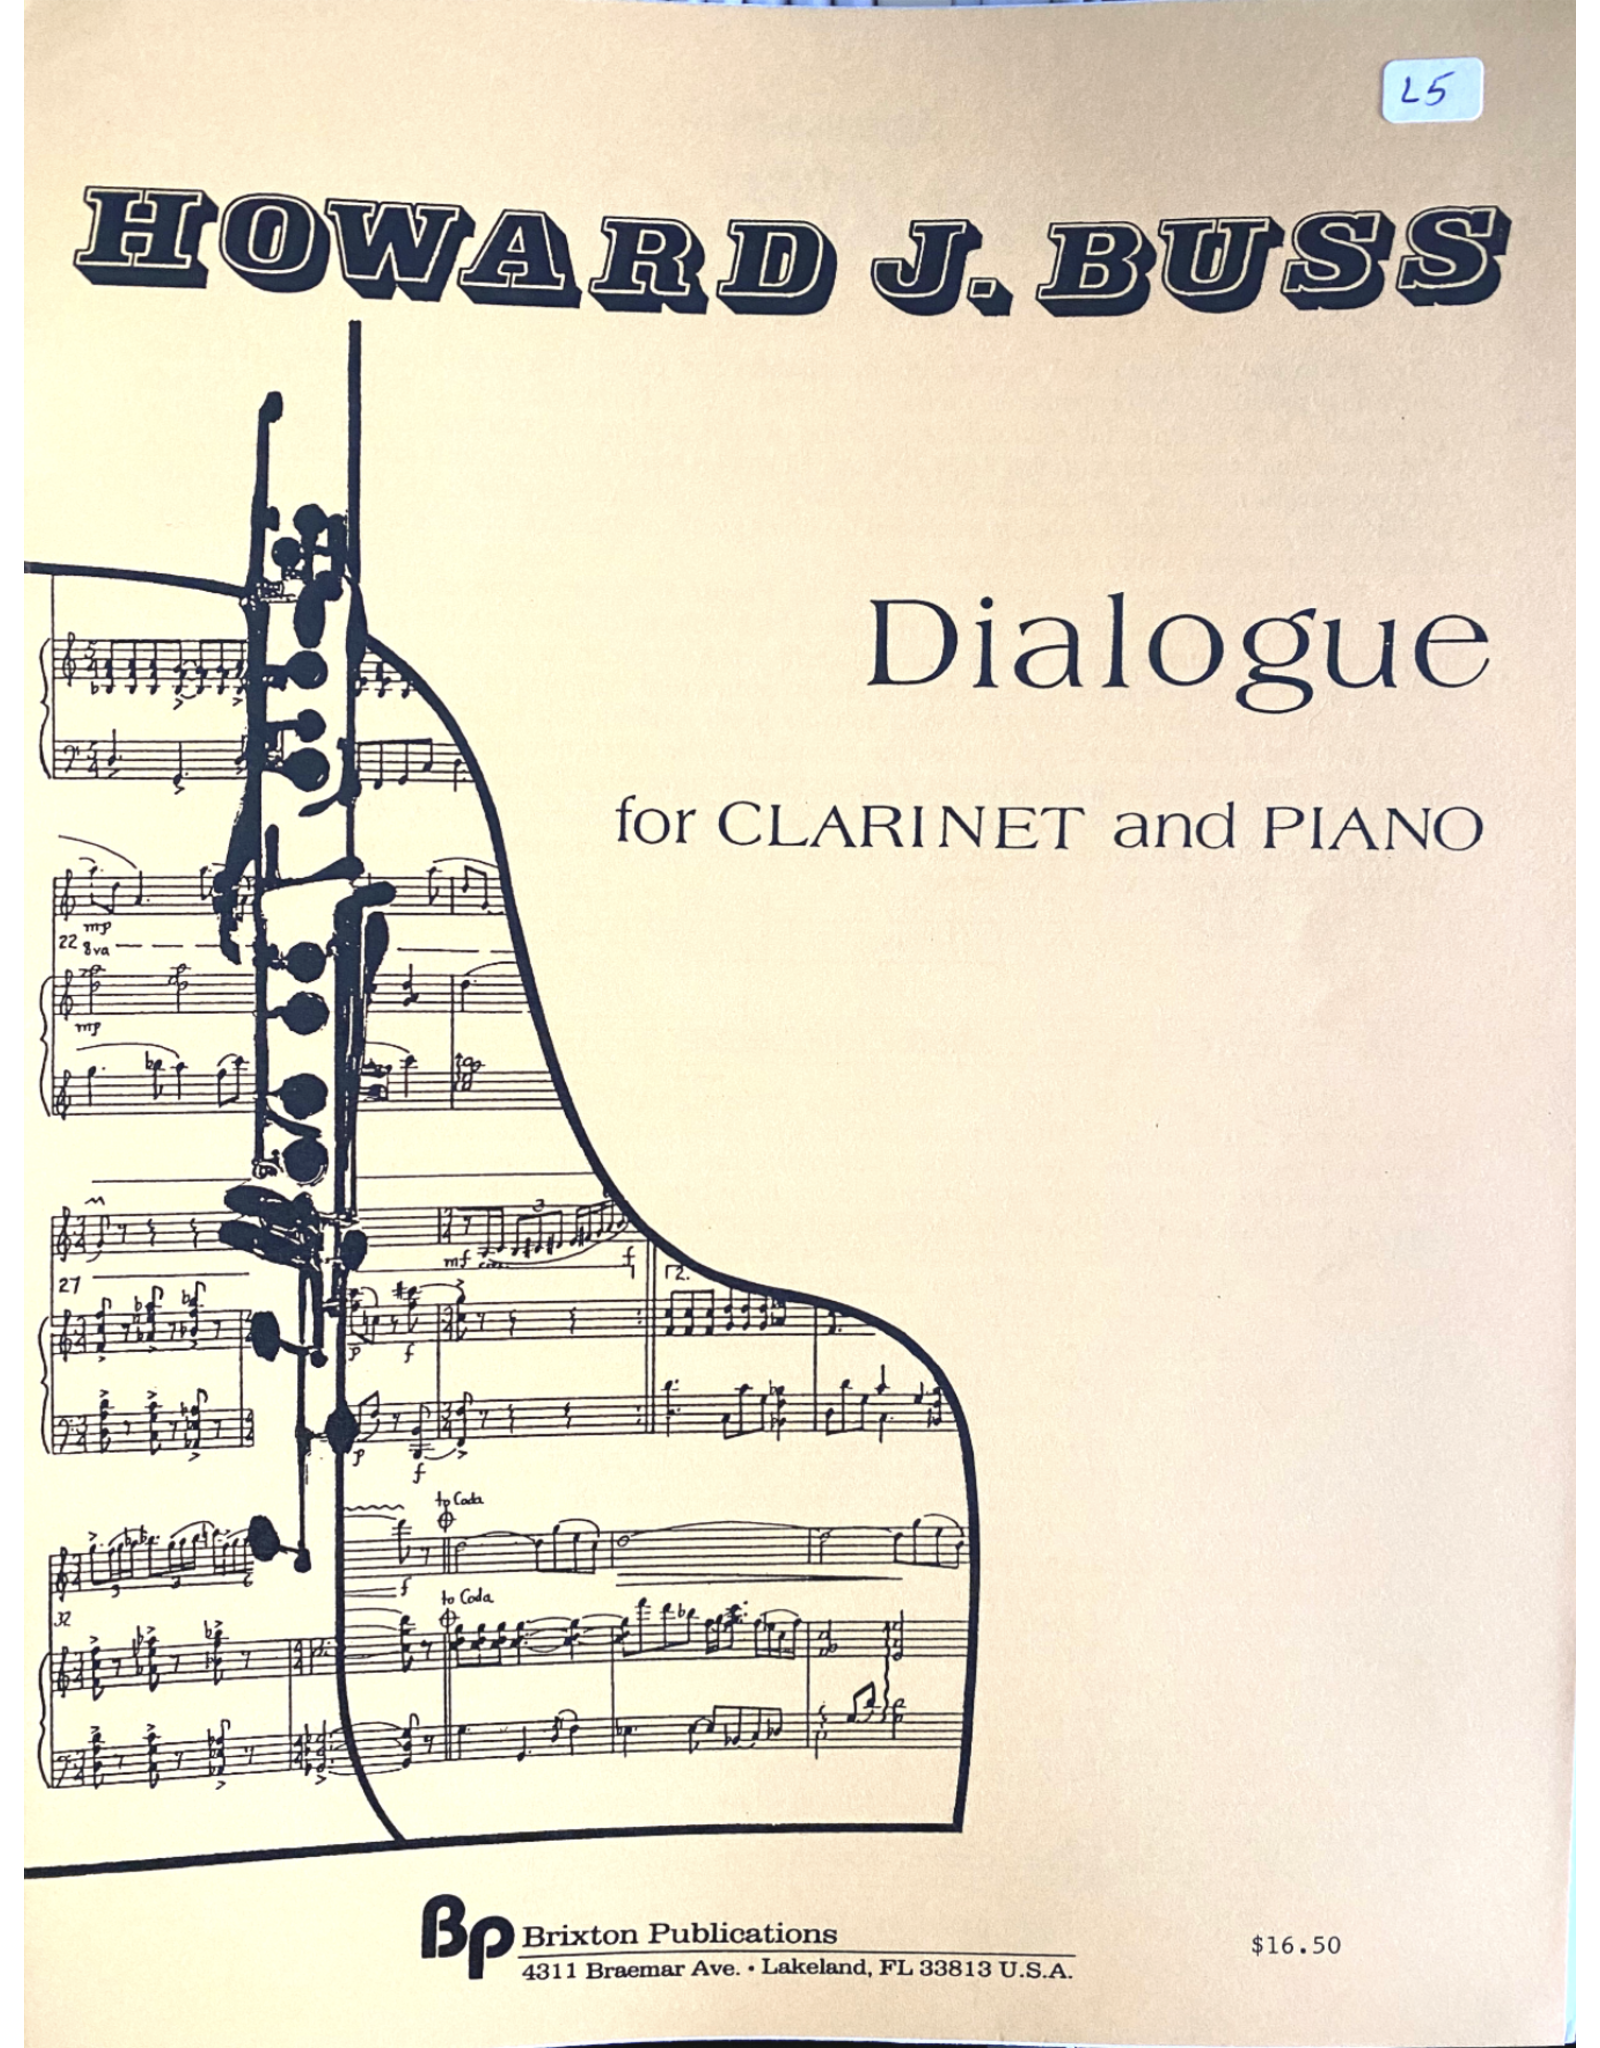 Generic Buss - Dialogue for Clarinet and Piano